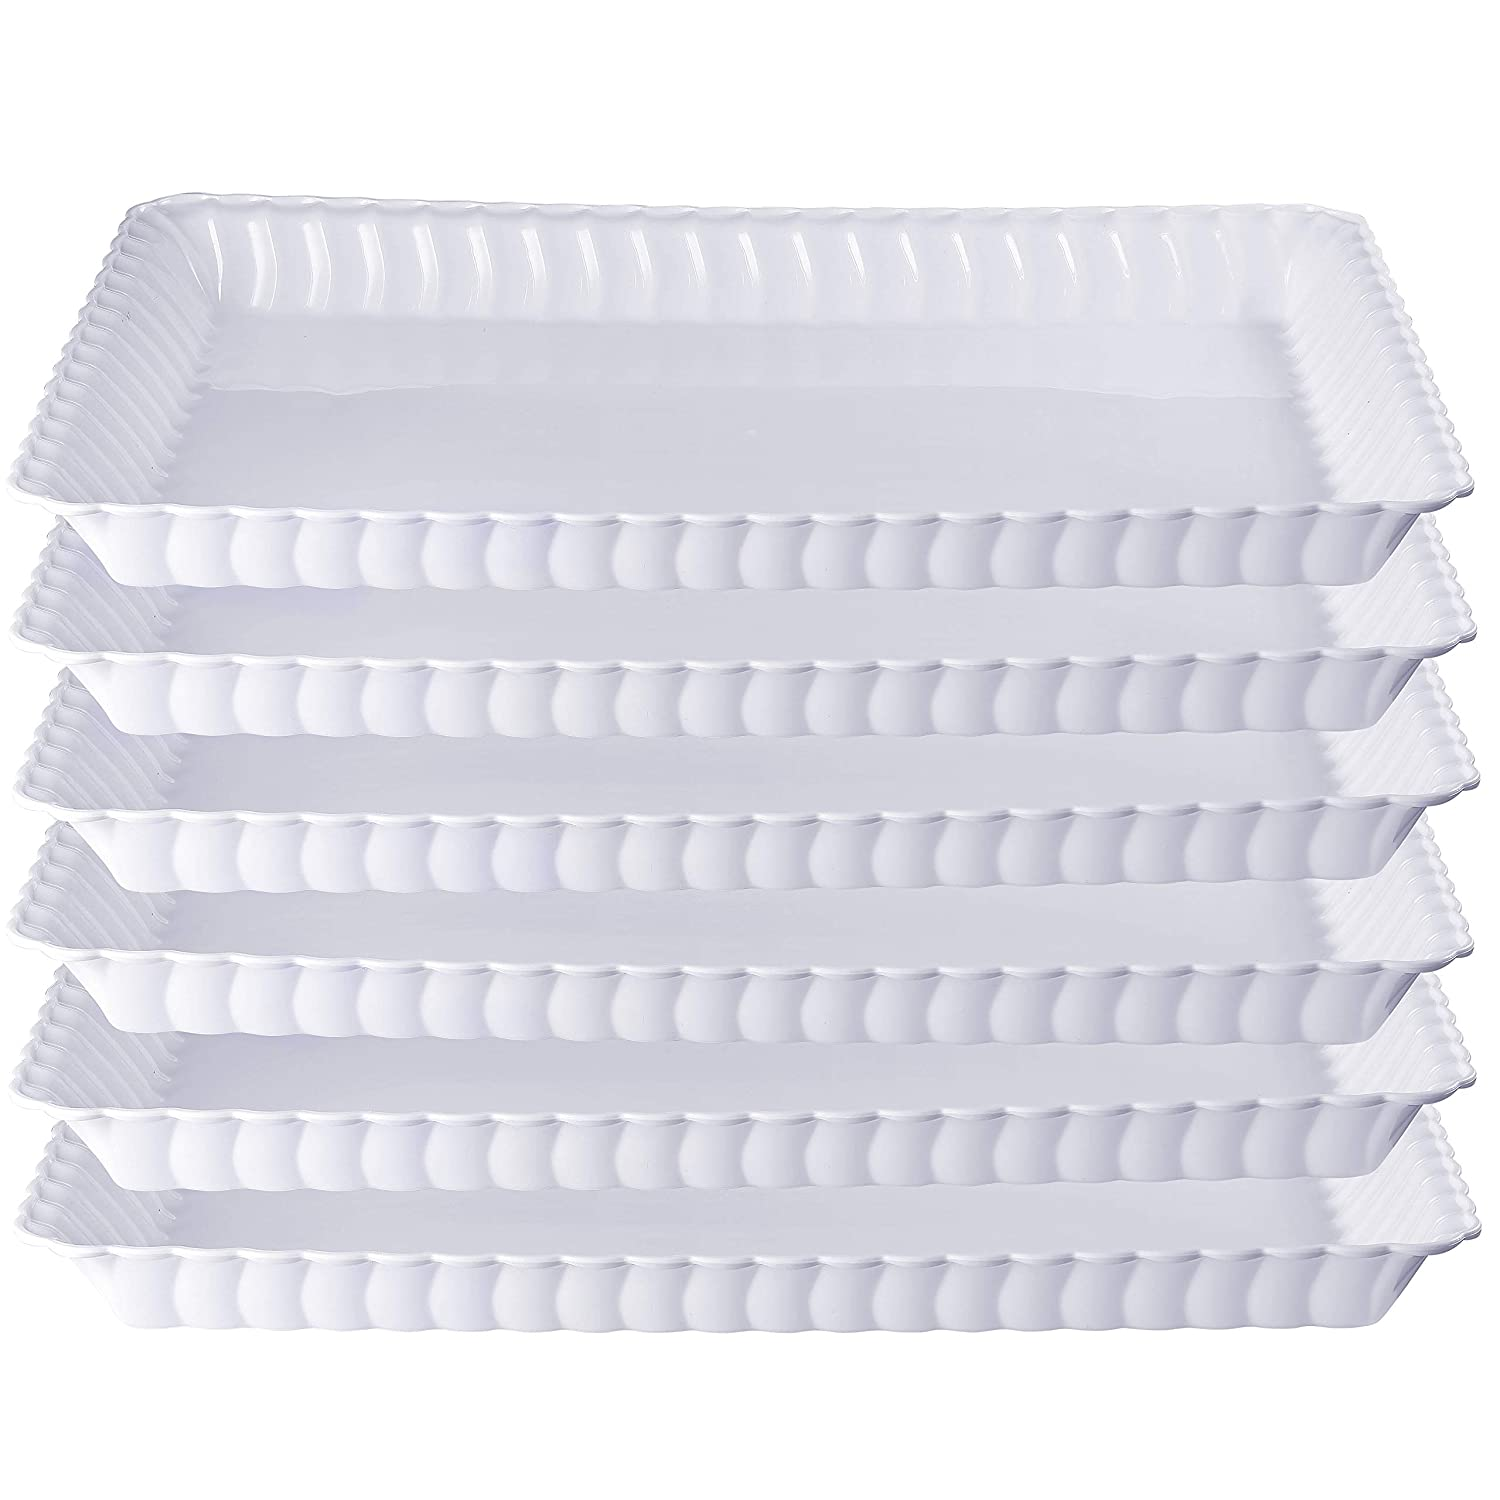 9 x 13 Disposable Rectangular tray Plastic Serving Trays -6 Pack The Perfect Platters And Trays For Parties White